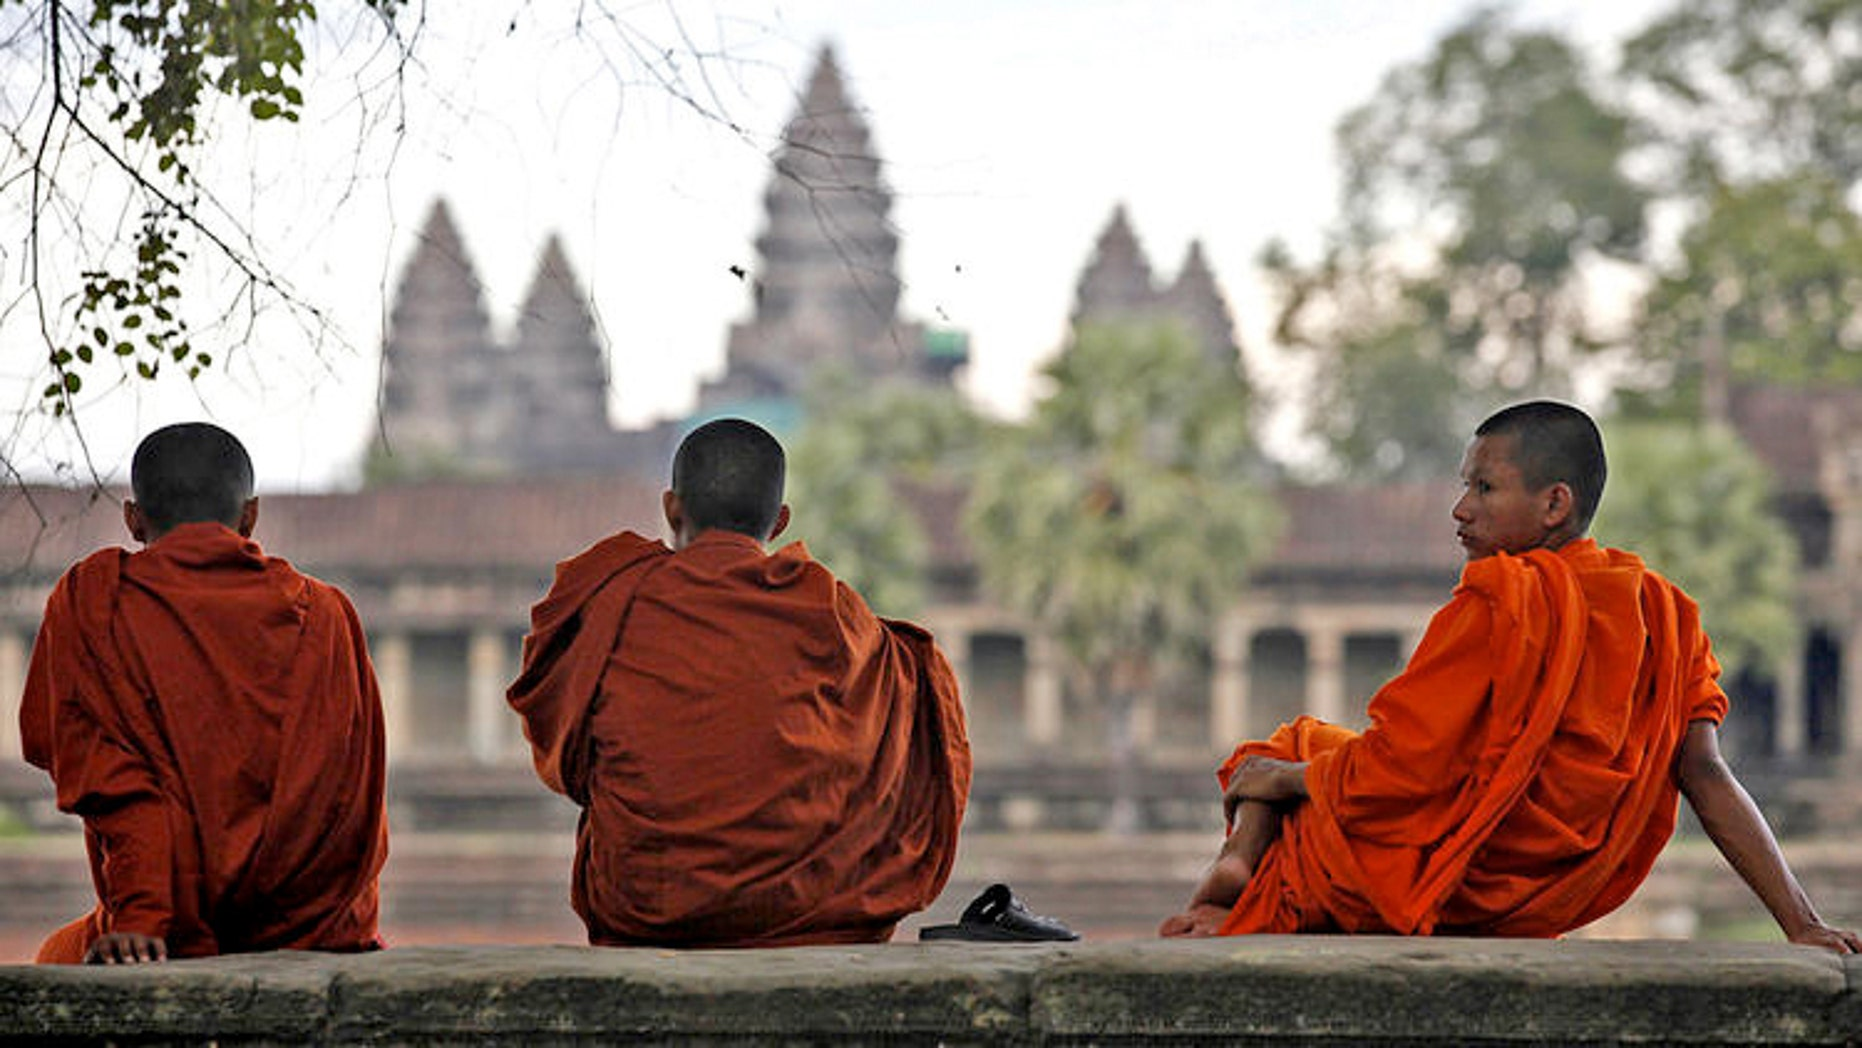 Buddhist monks on the grounds of Angkor Wat.